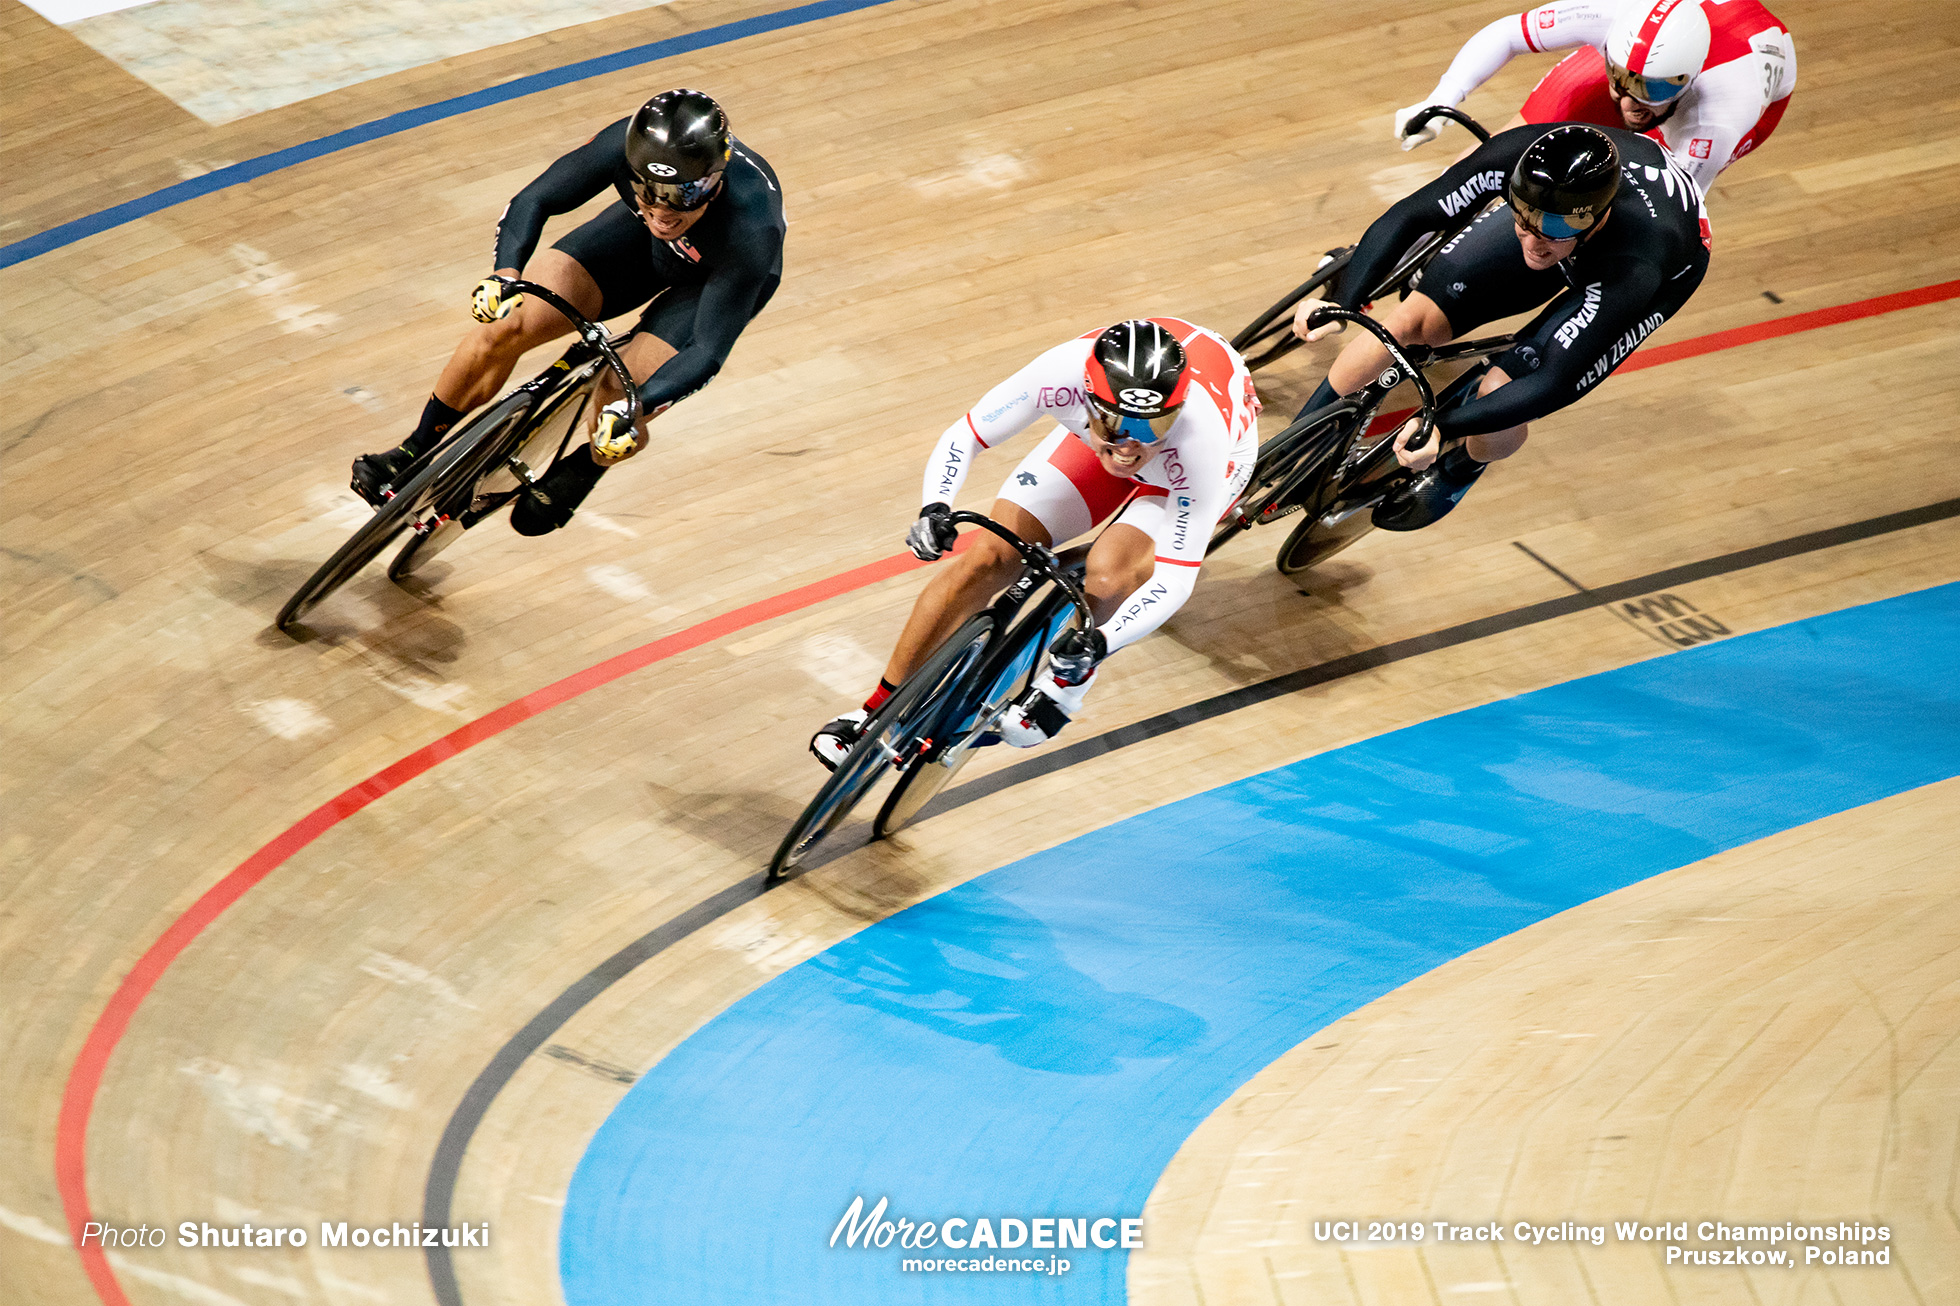 Men's Keirin Final 7-12 / 2019 Track Cycling World Championships Pruszków, Poland